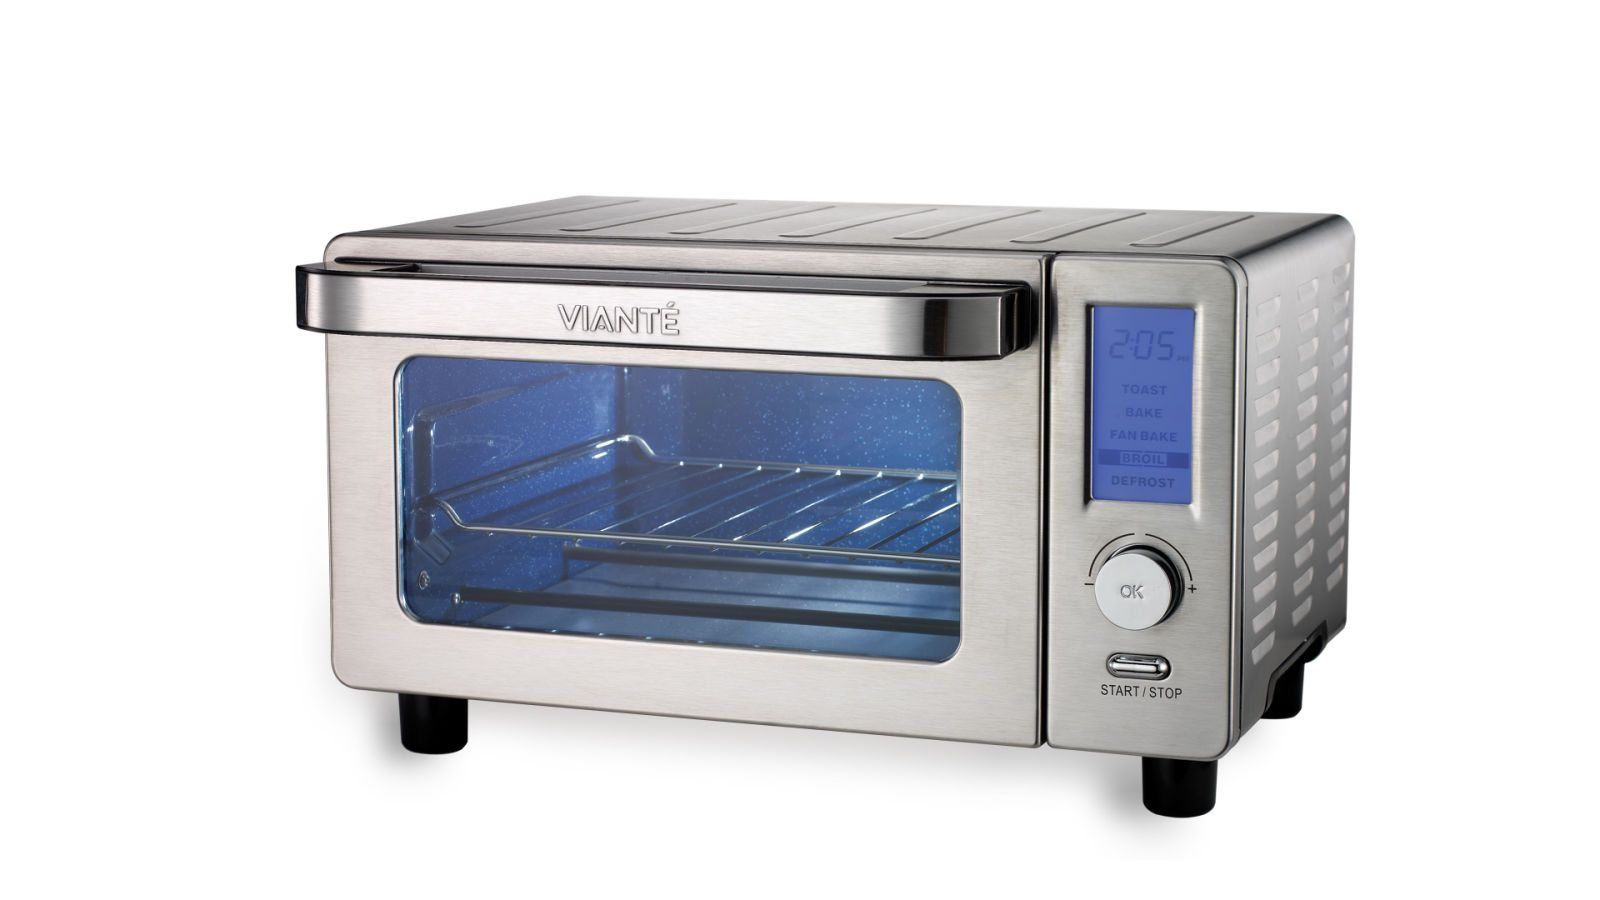 Exceptionnel Viante True Blue Convection Toaster Oven Cuc 04e